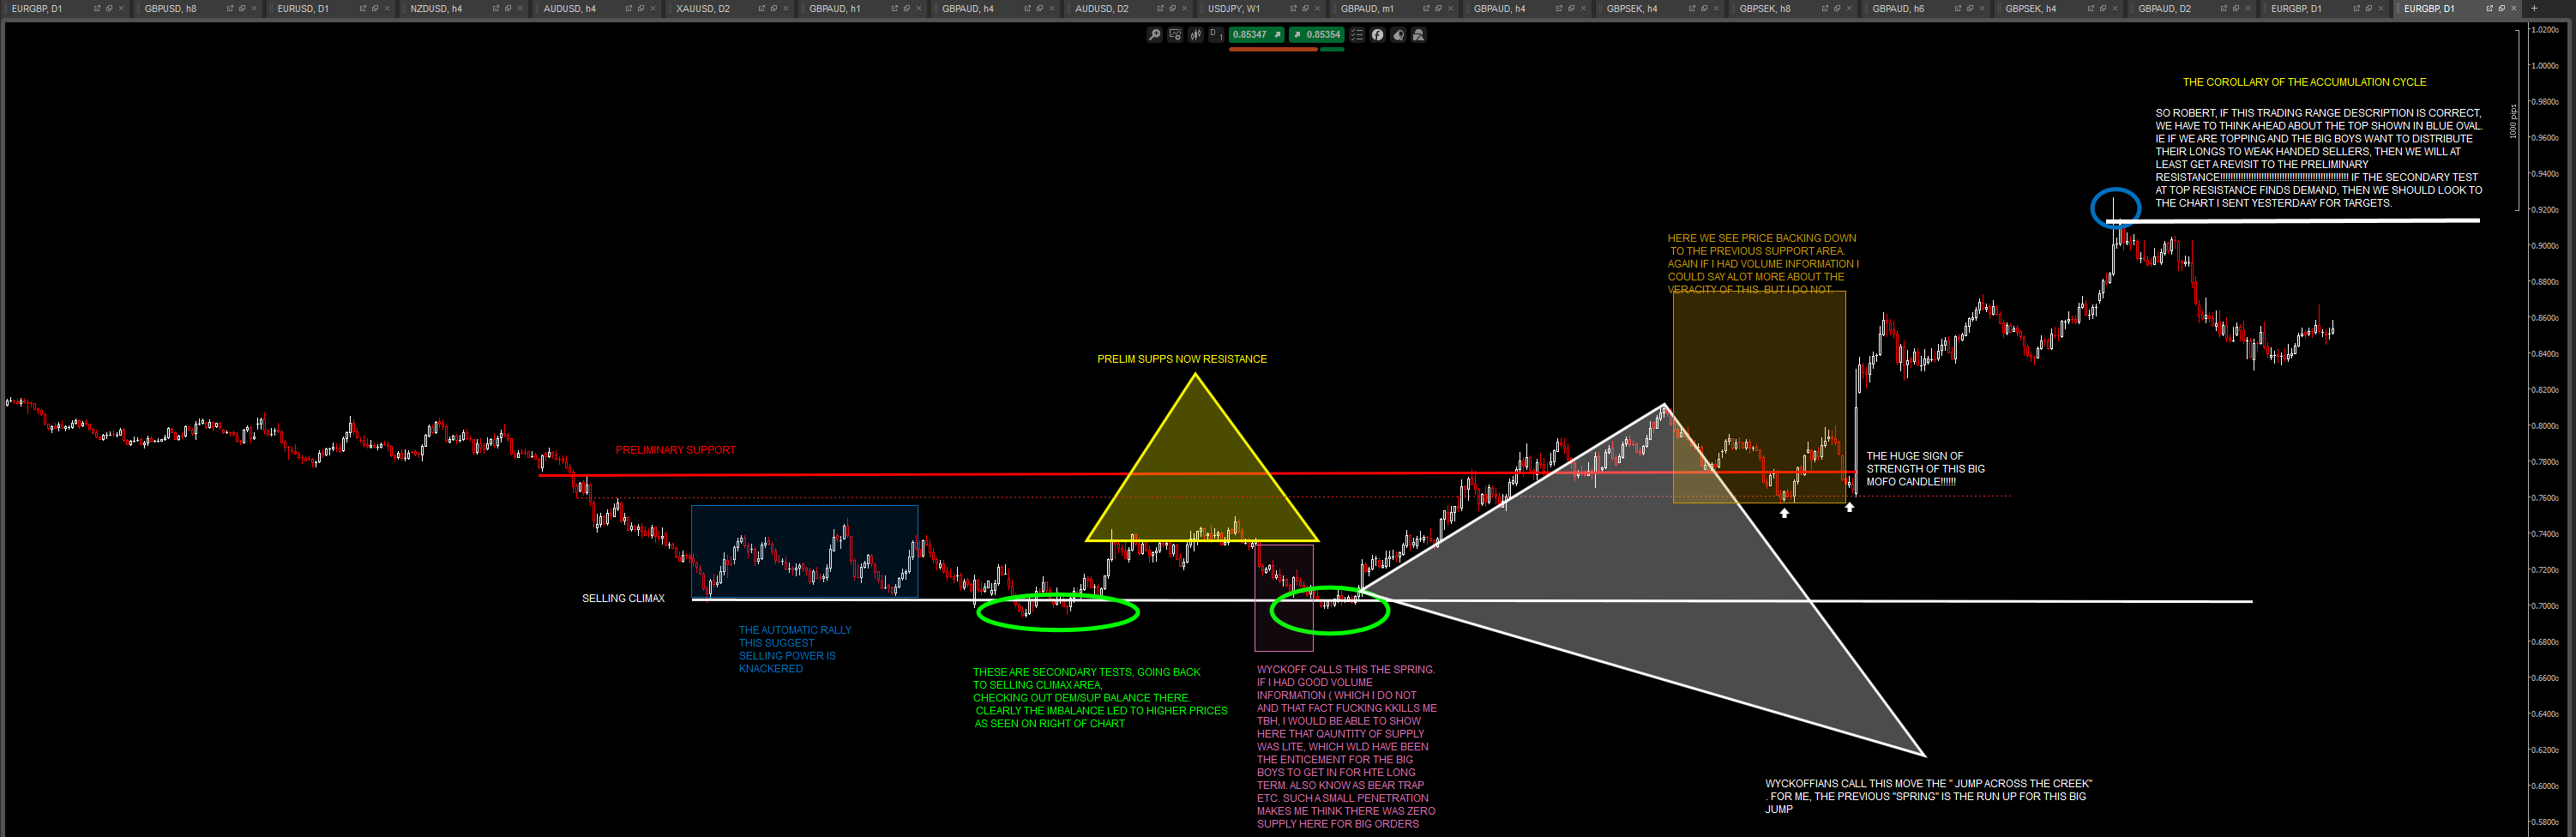 wyckoff-accumulation-cycle-euro-gbp.png